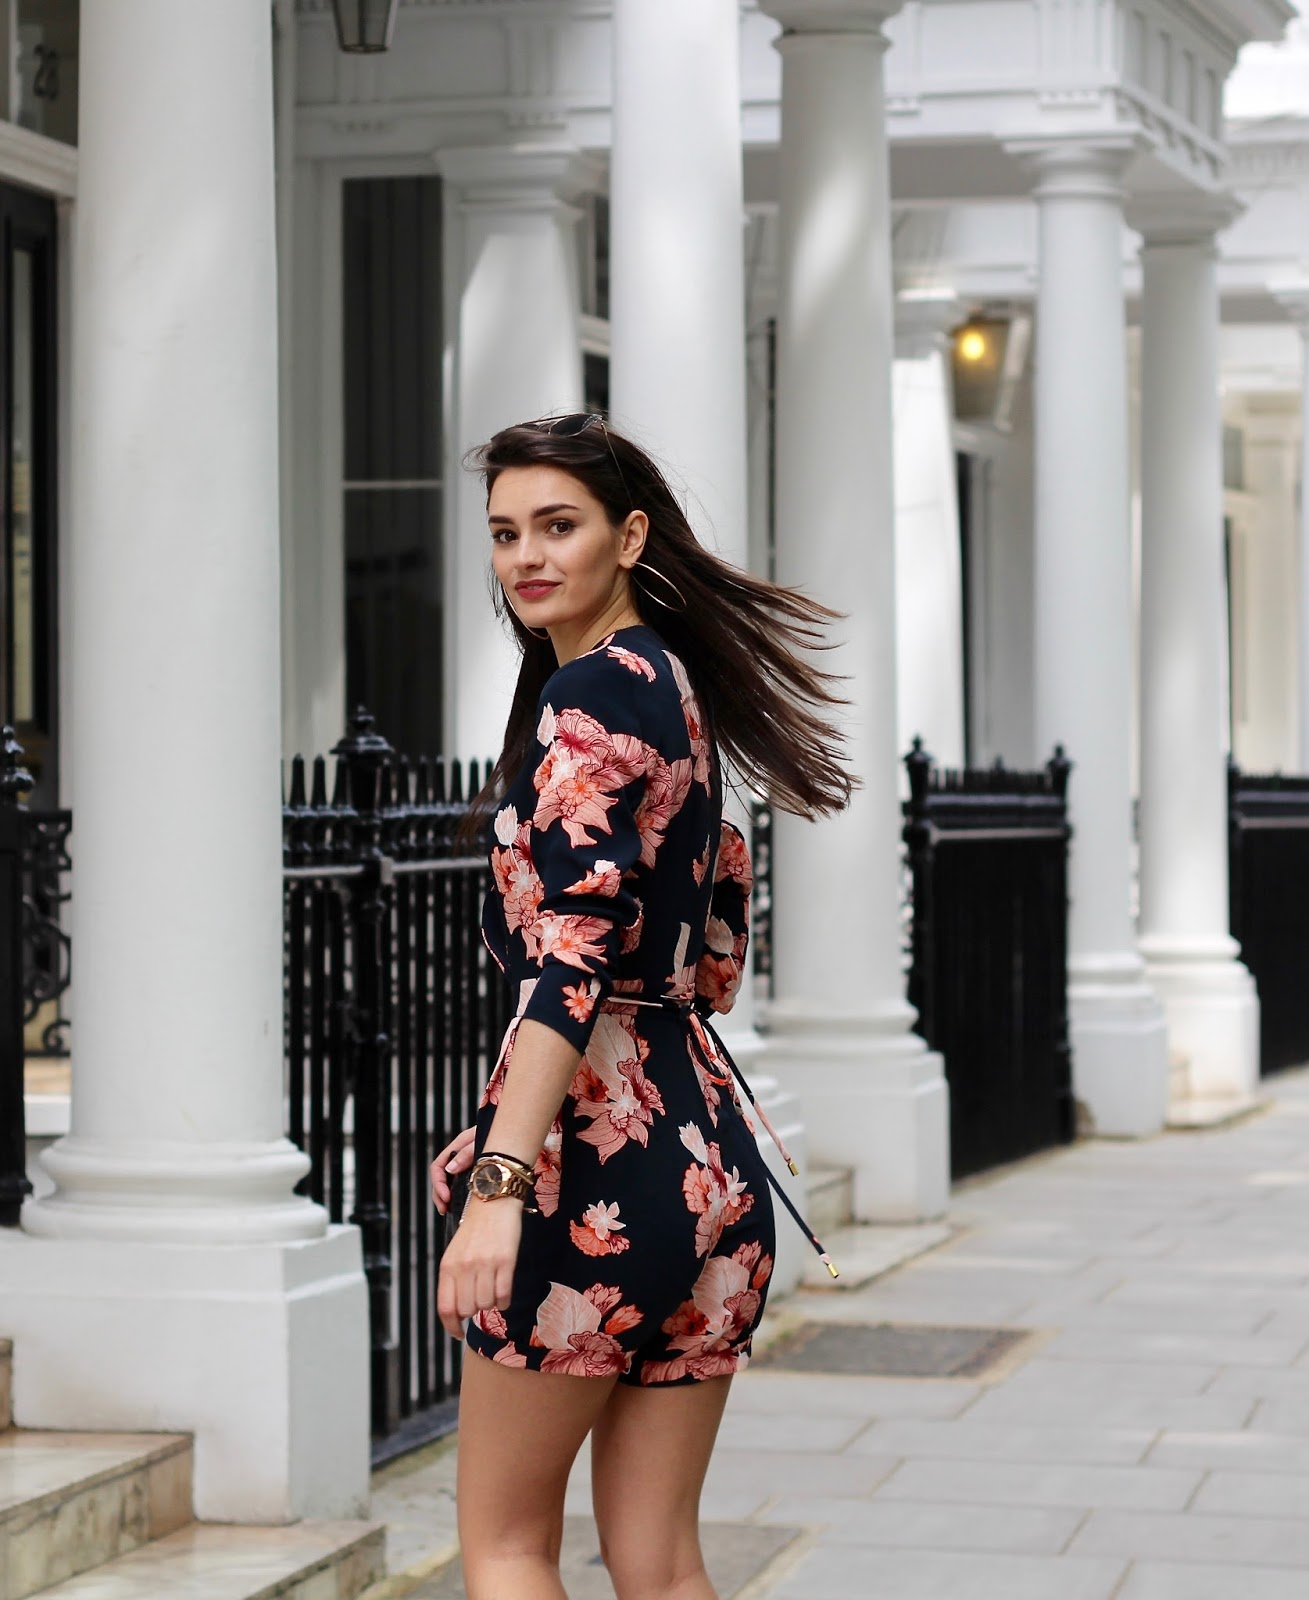 fashion blogger peexo floral spring playsuit